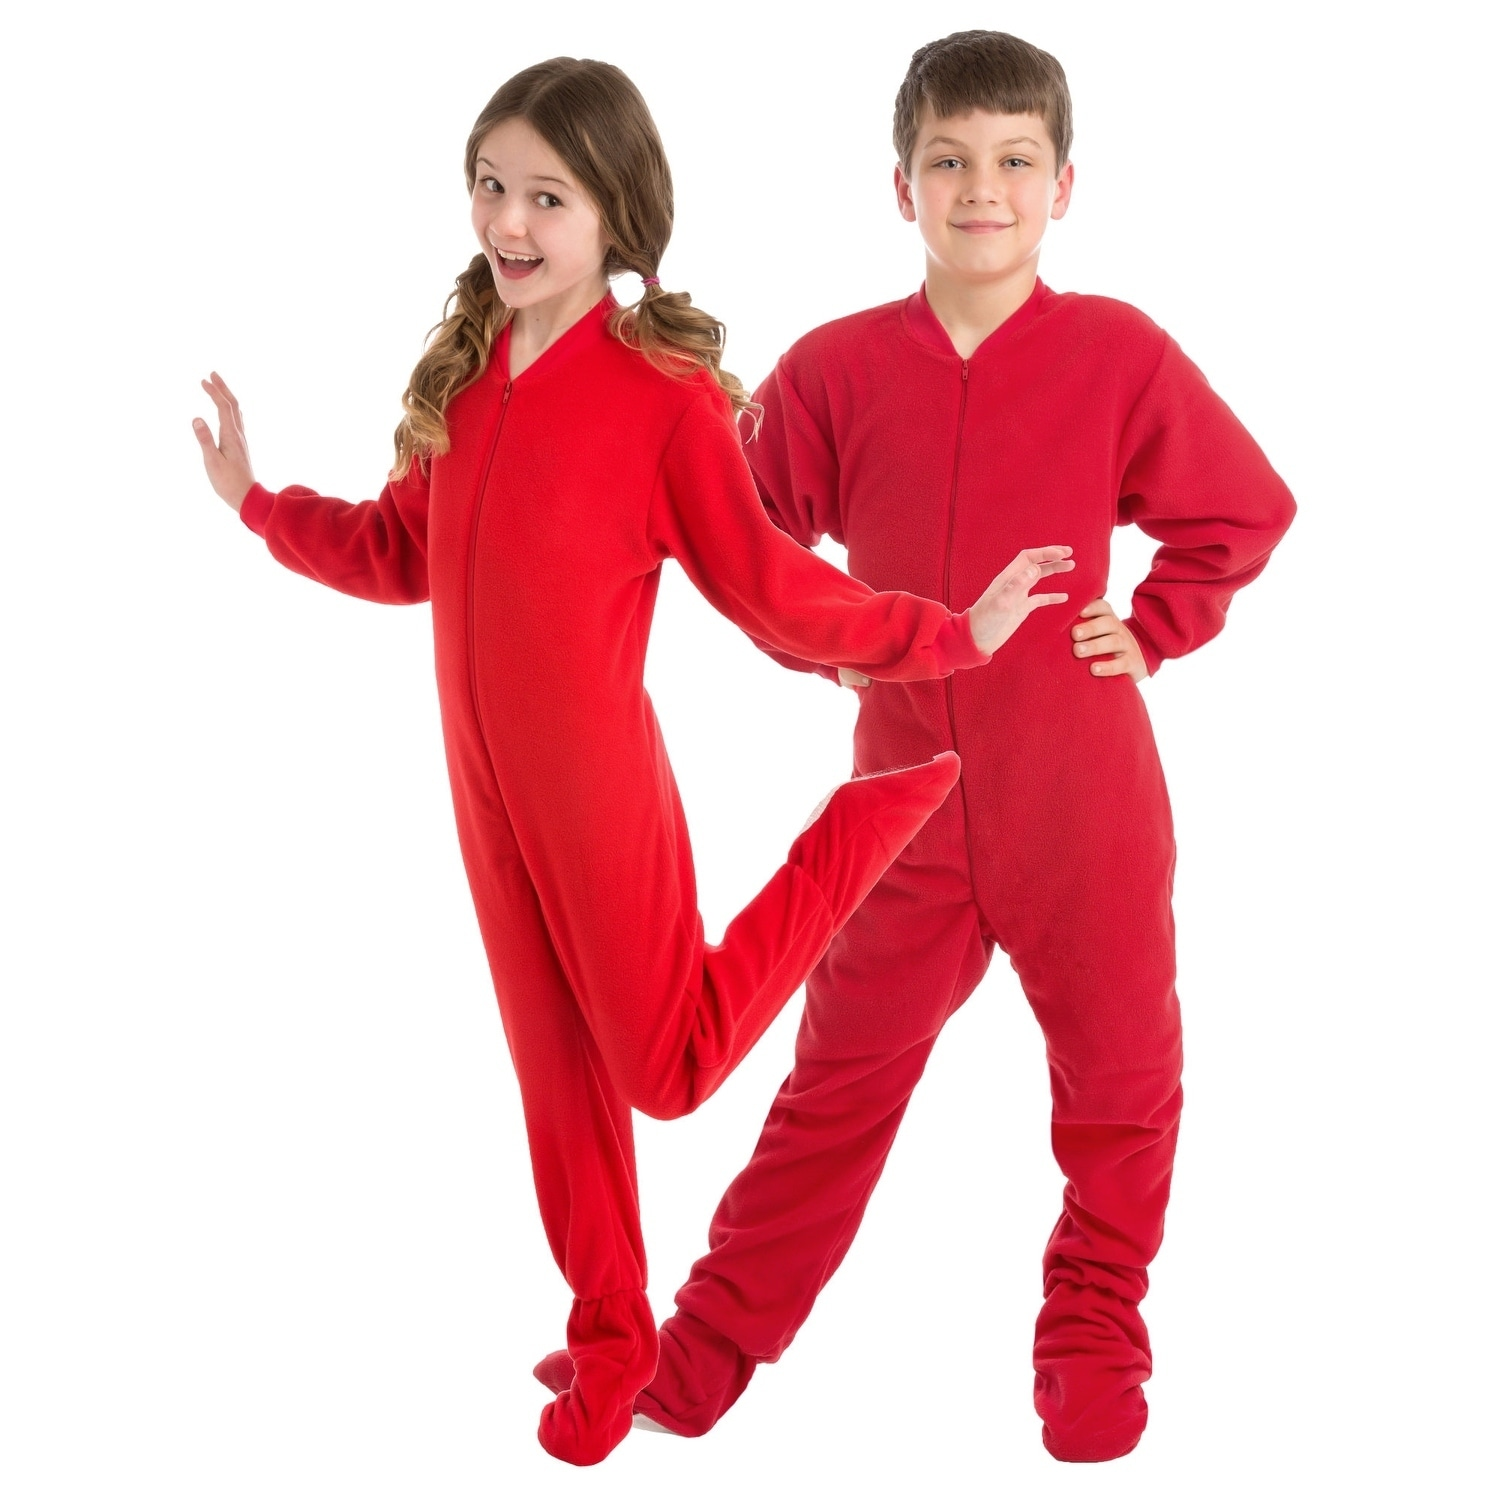 Christmas Footie Pajamas For Kids.Big Feet Pjs Big Boys Kids Red Fleece Footed Pajamas Sleeper